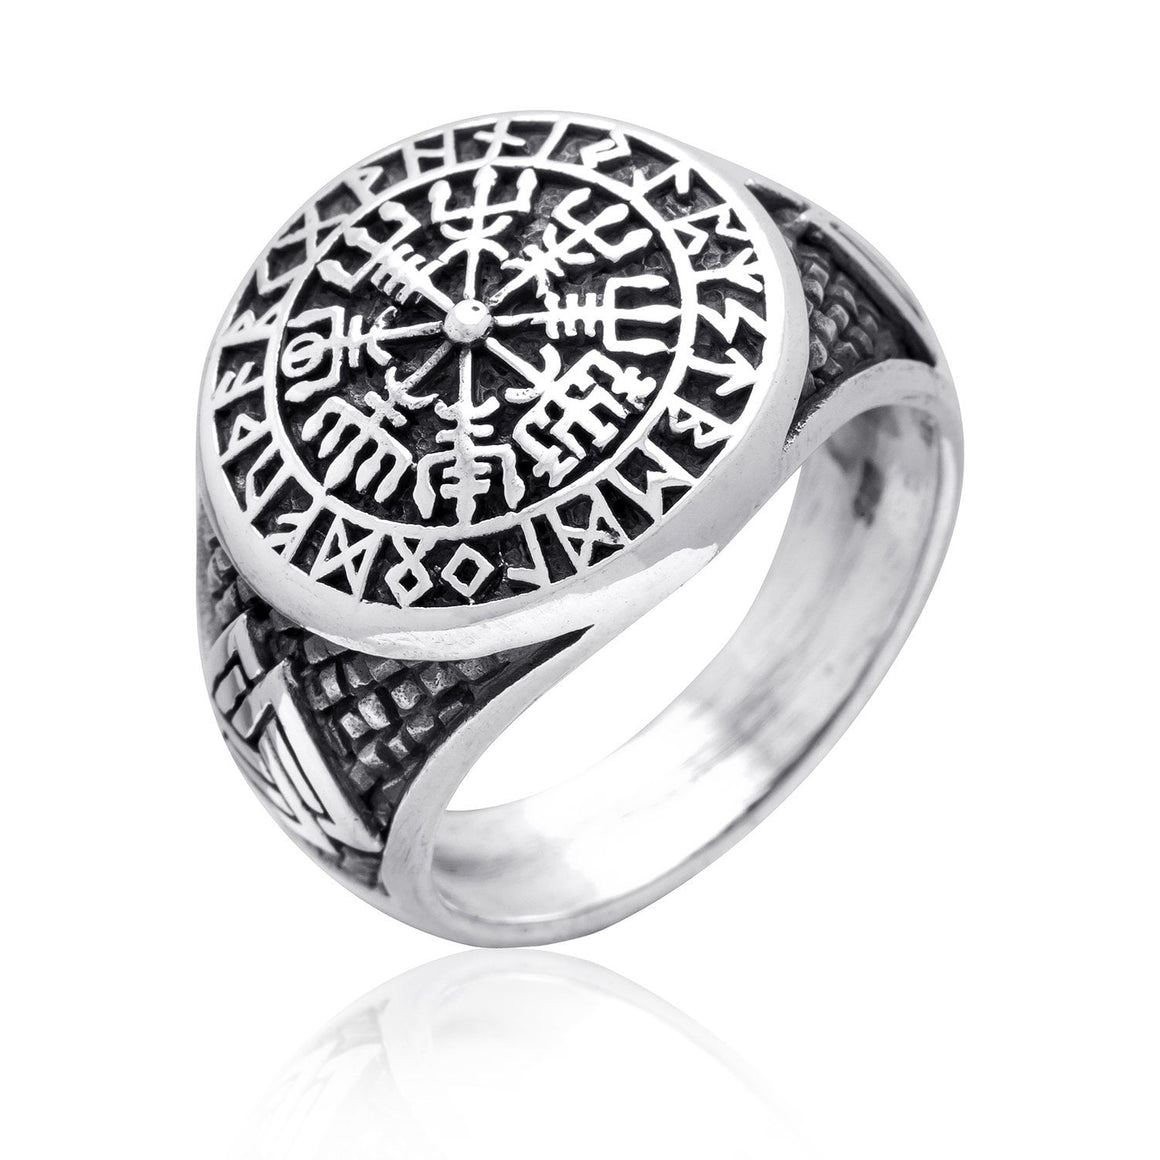 925 Sterling Silver Vegvisir Valknut Runes Viking Jewelry Ring - SilverMania925